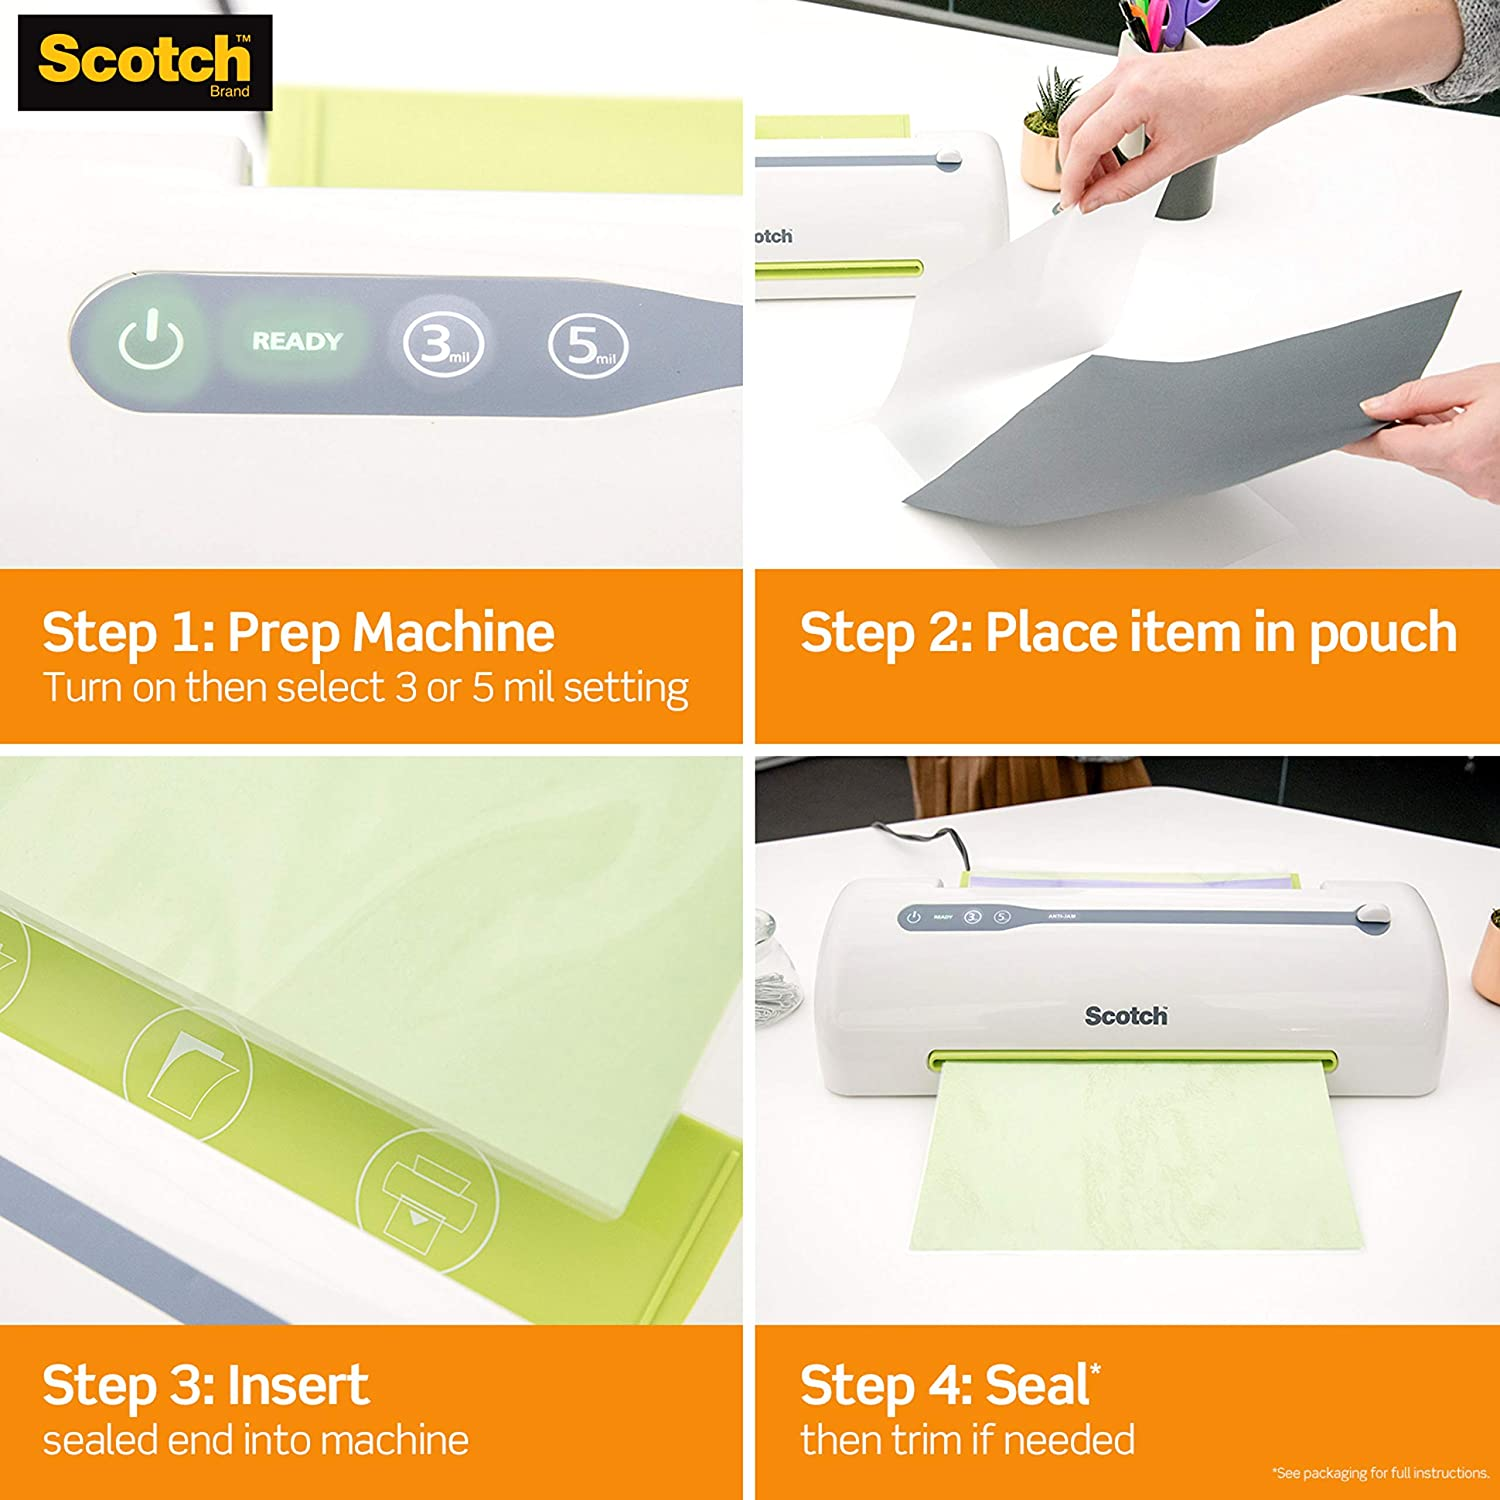 TP3855-20 Legal Size 8.9 x 14.4-Inches Scotch Thermal Laminating Pouches 20-Pack - 1 Pack